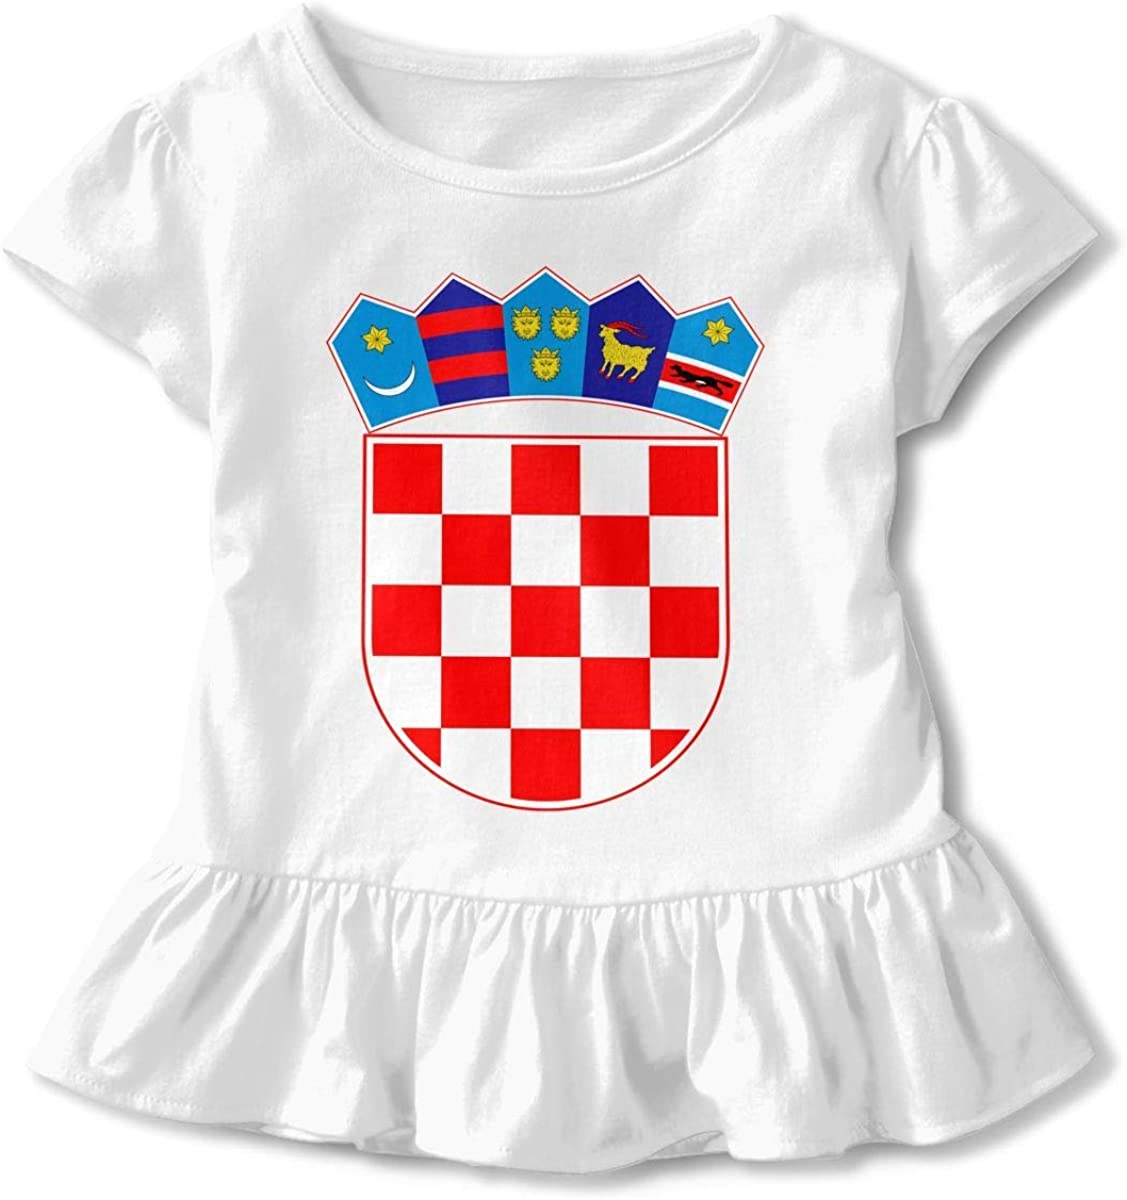 HelloWorlduk Toddler Baby Girl Croatia Flag Funny Short Sleeve Cotton T Shirts Basic Tops Tee Clothes